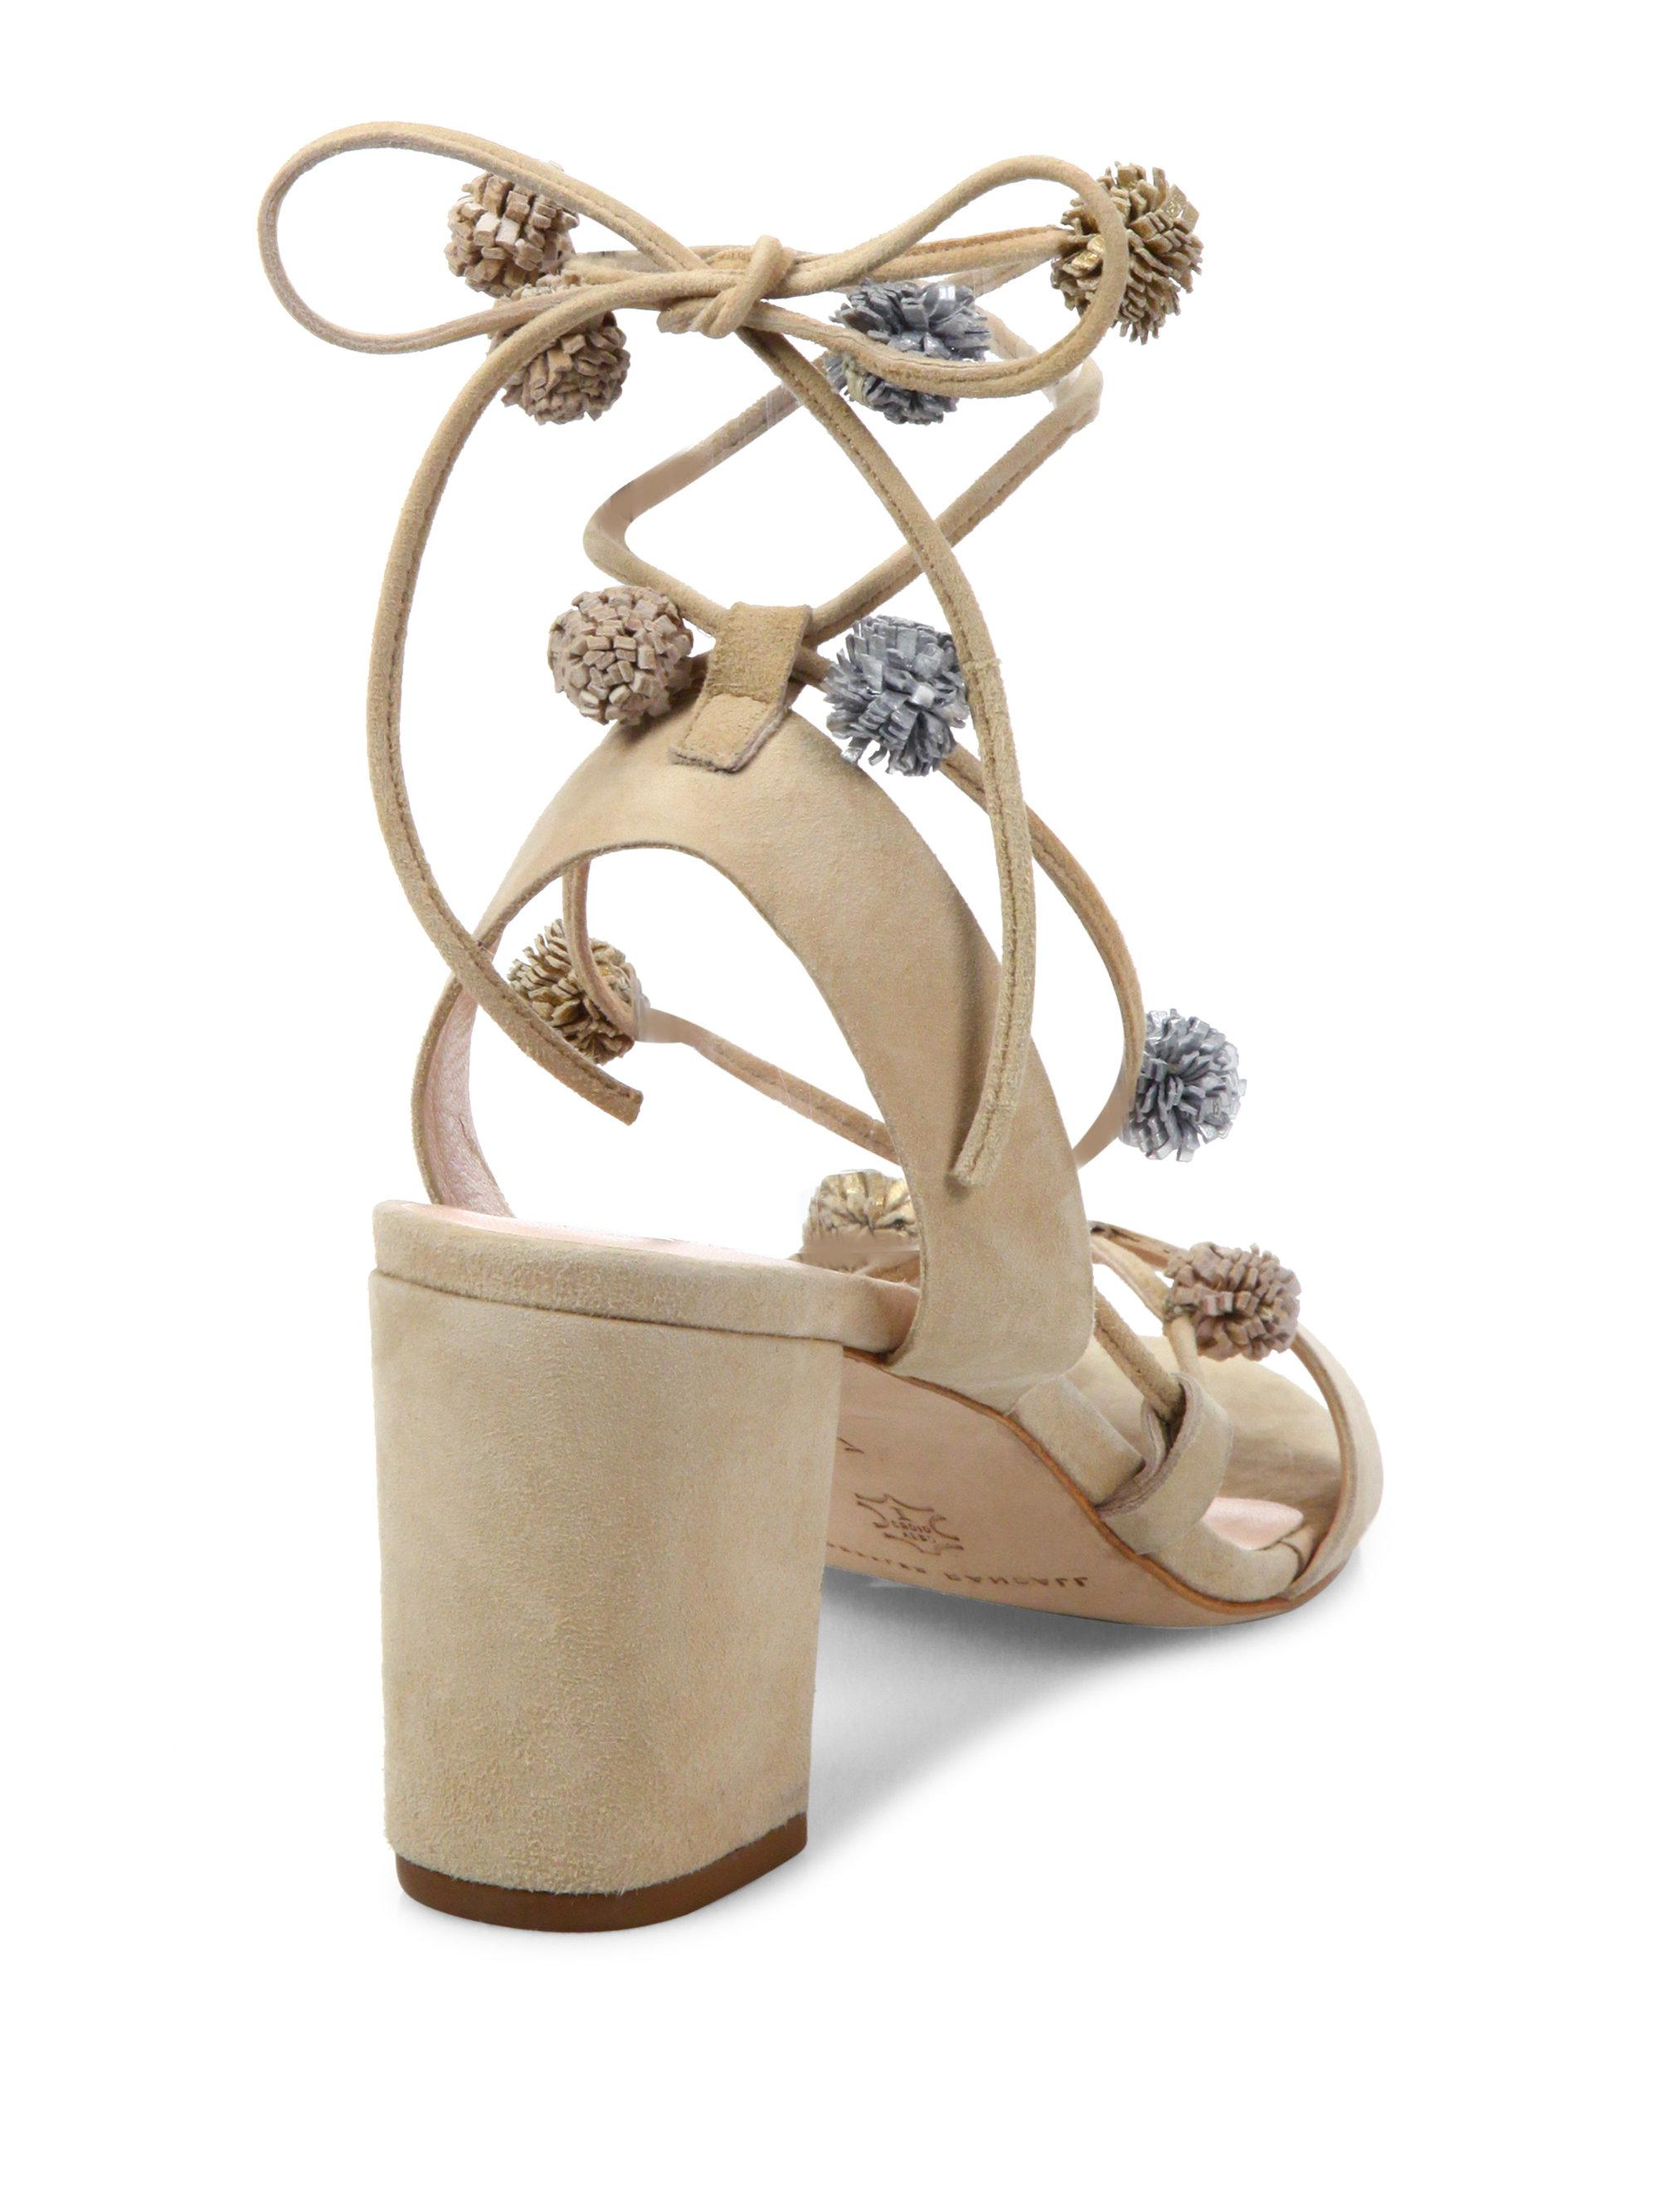 13fa34ab63a Gallery. Previously sold at  Saks Fifth Avenue · Women s Pom Pom Shoes  Women s Strappy Heels ...